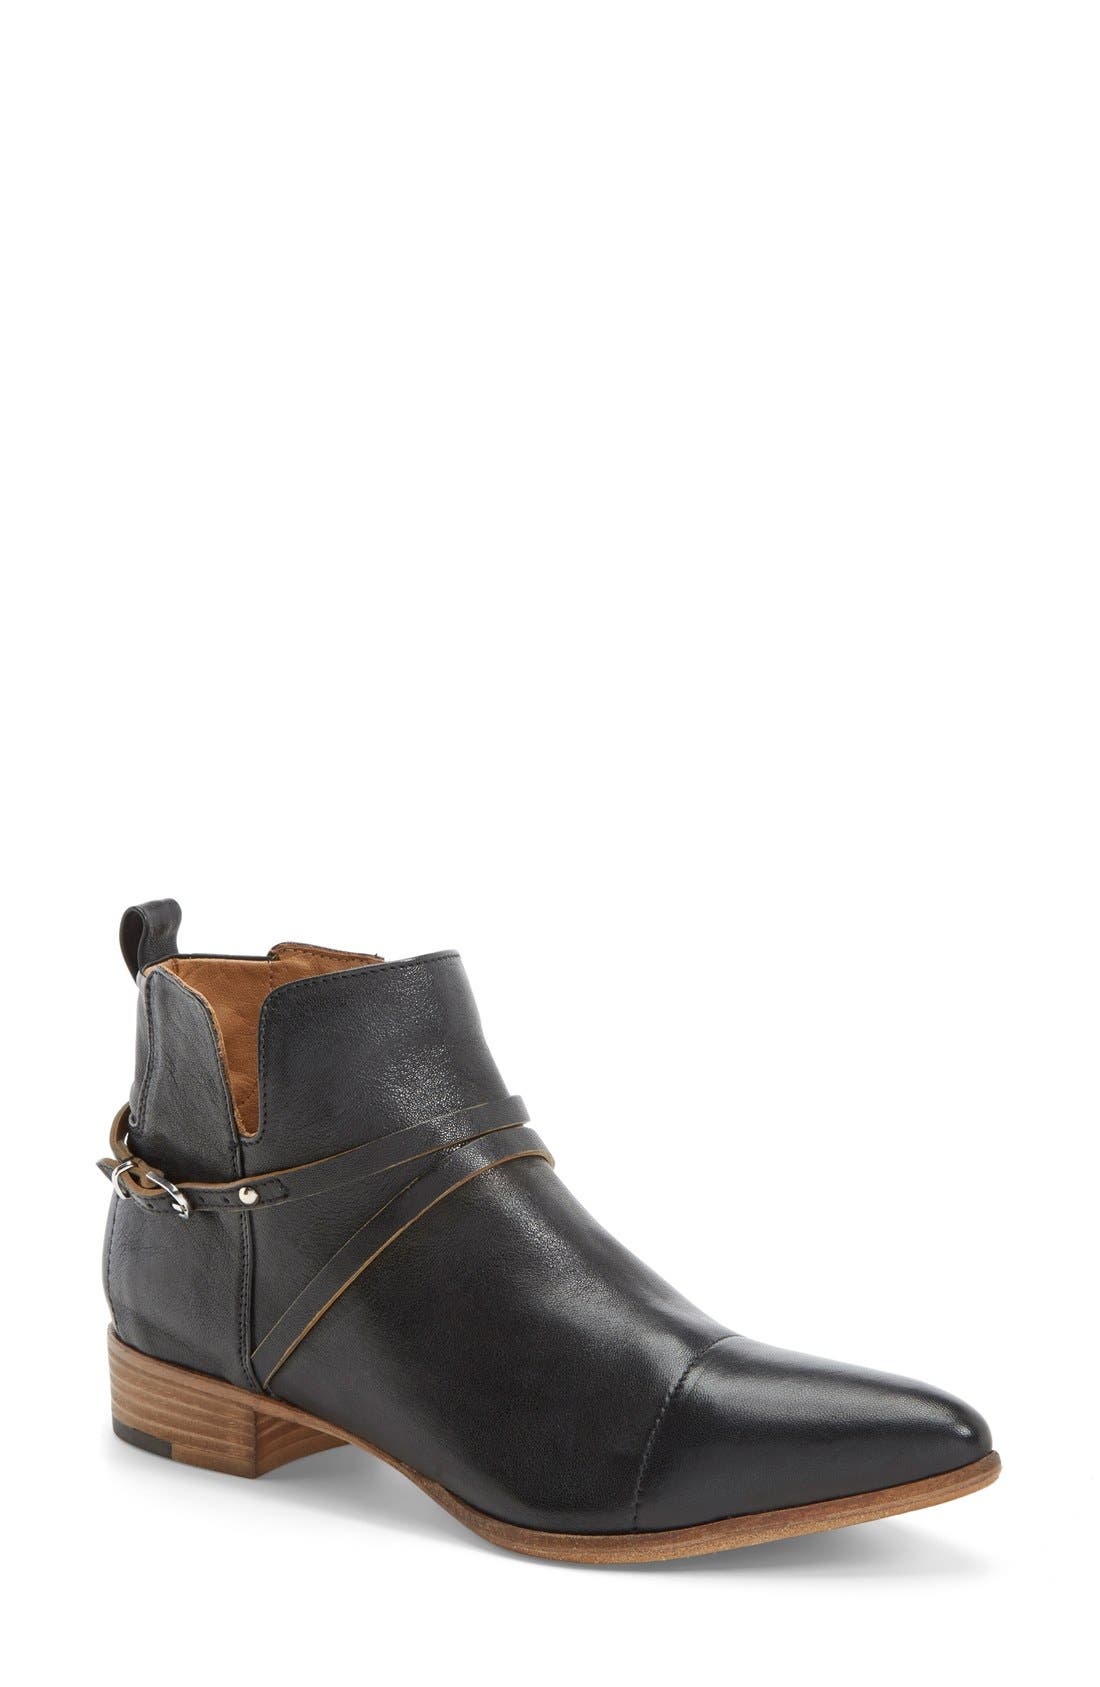 'Mea' Ankle Boot,                             Main thumbnail 5, color,